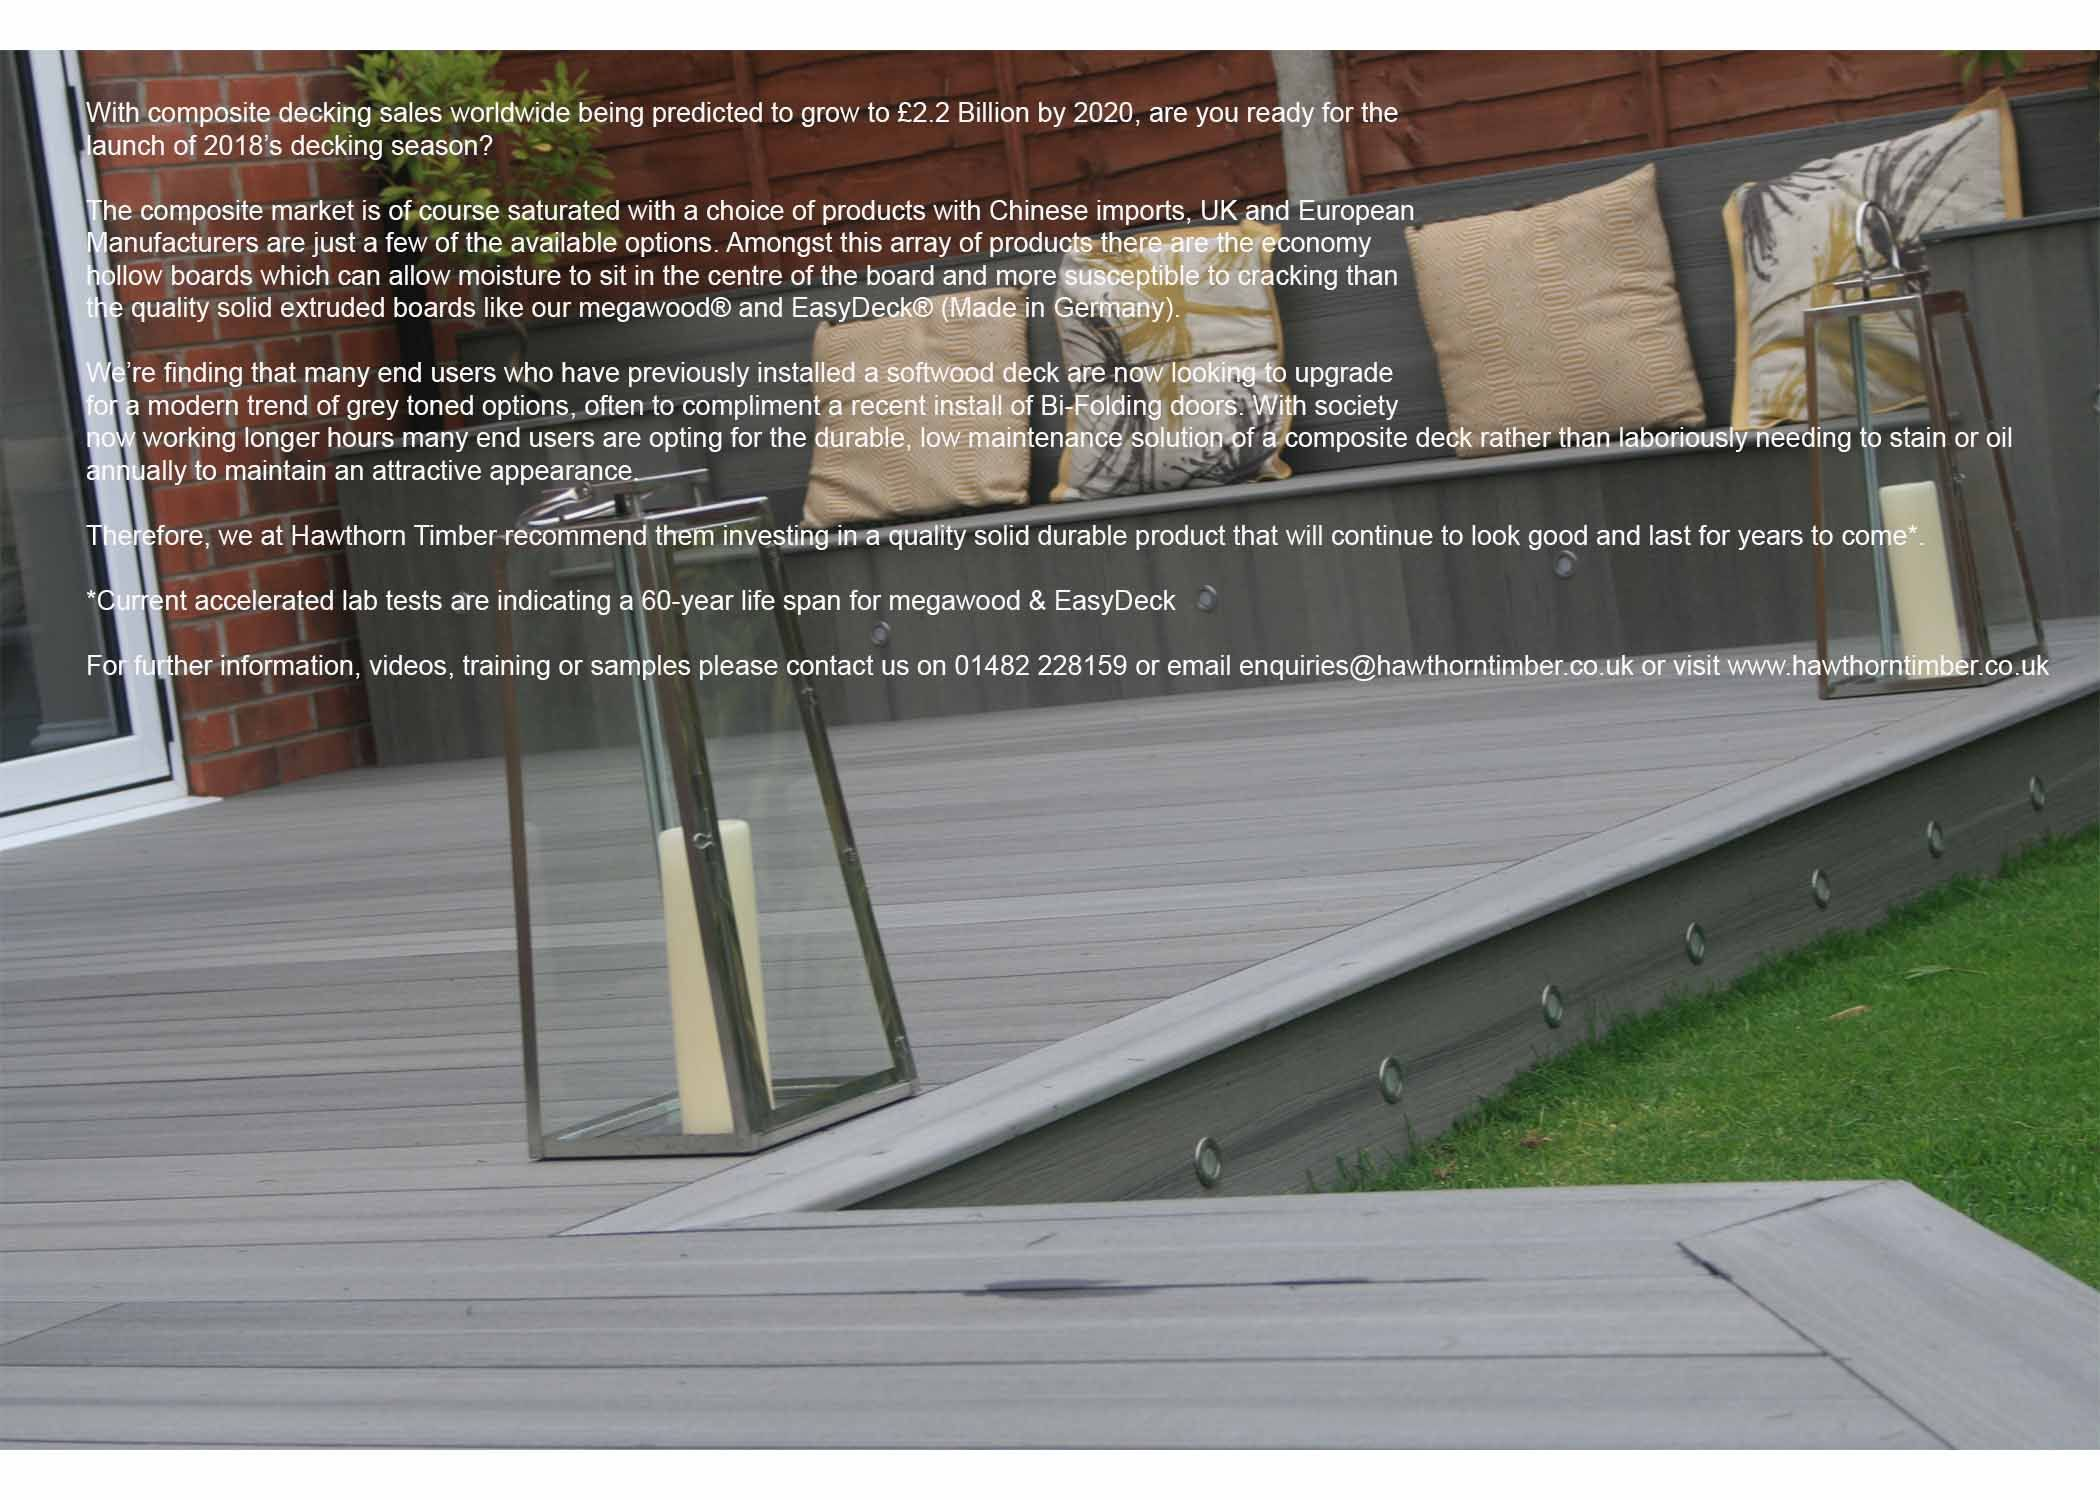 Best Composite Decking 2020.Are You Ready For The 2018 Decking Season Megawood